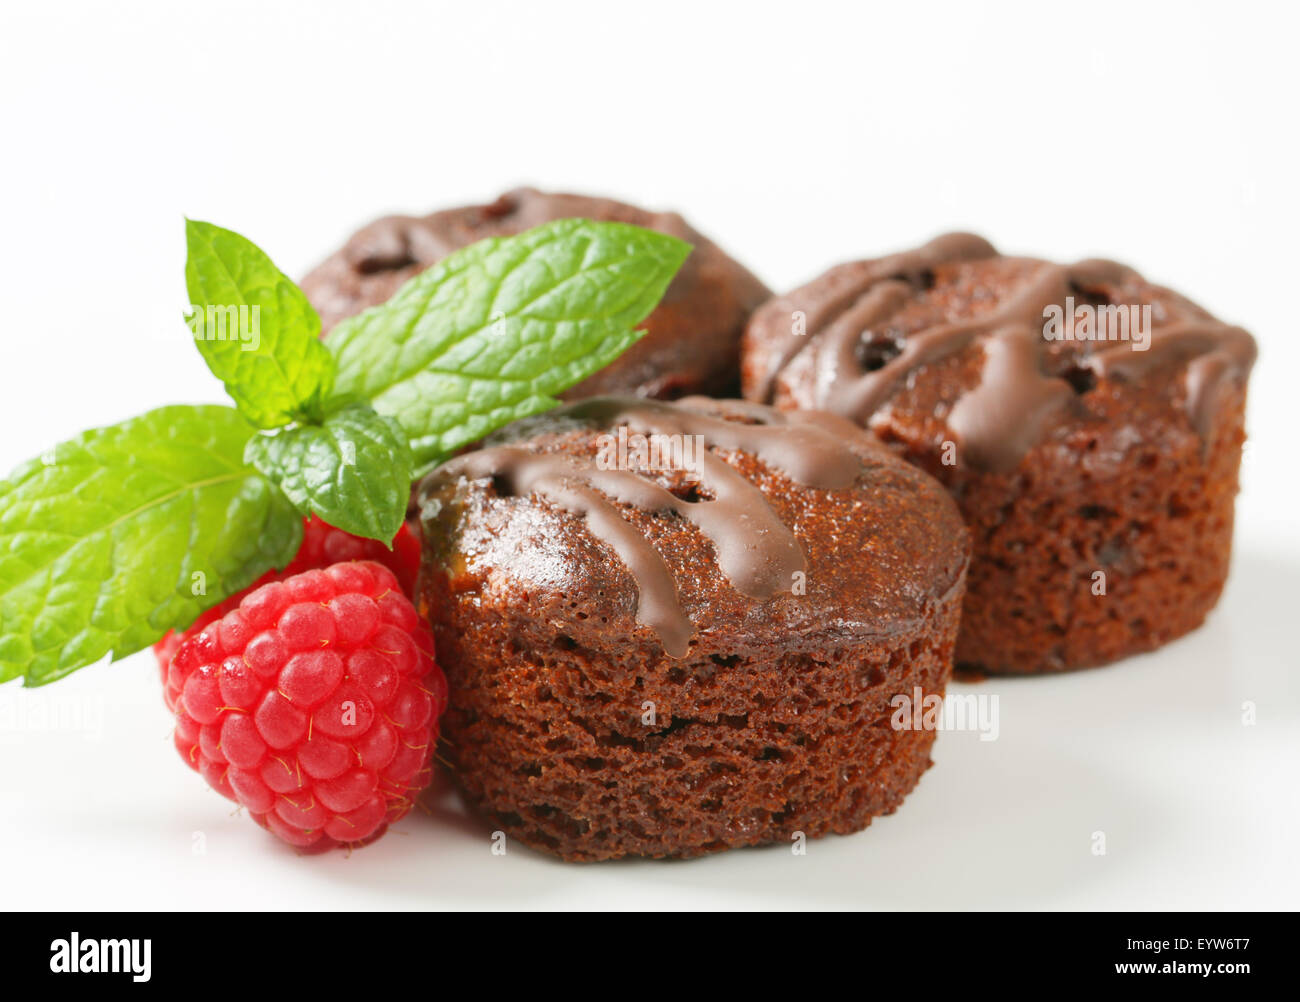 Mini chocolate cakes with raspberry filling - Stock Image